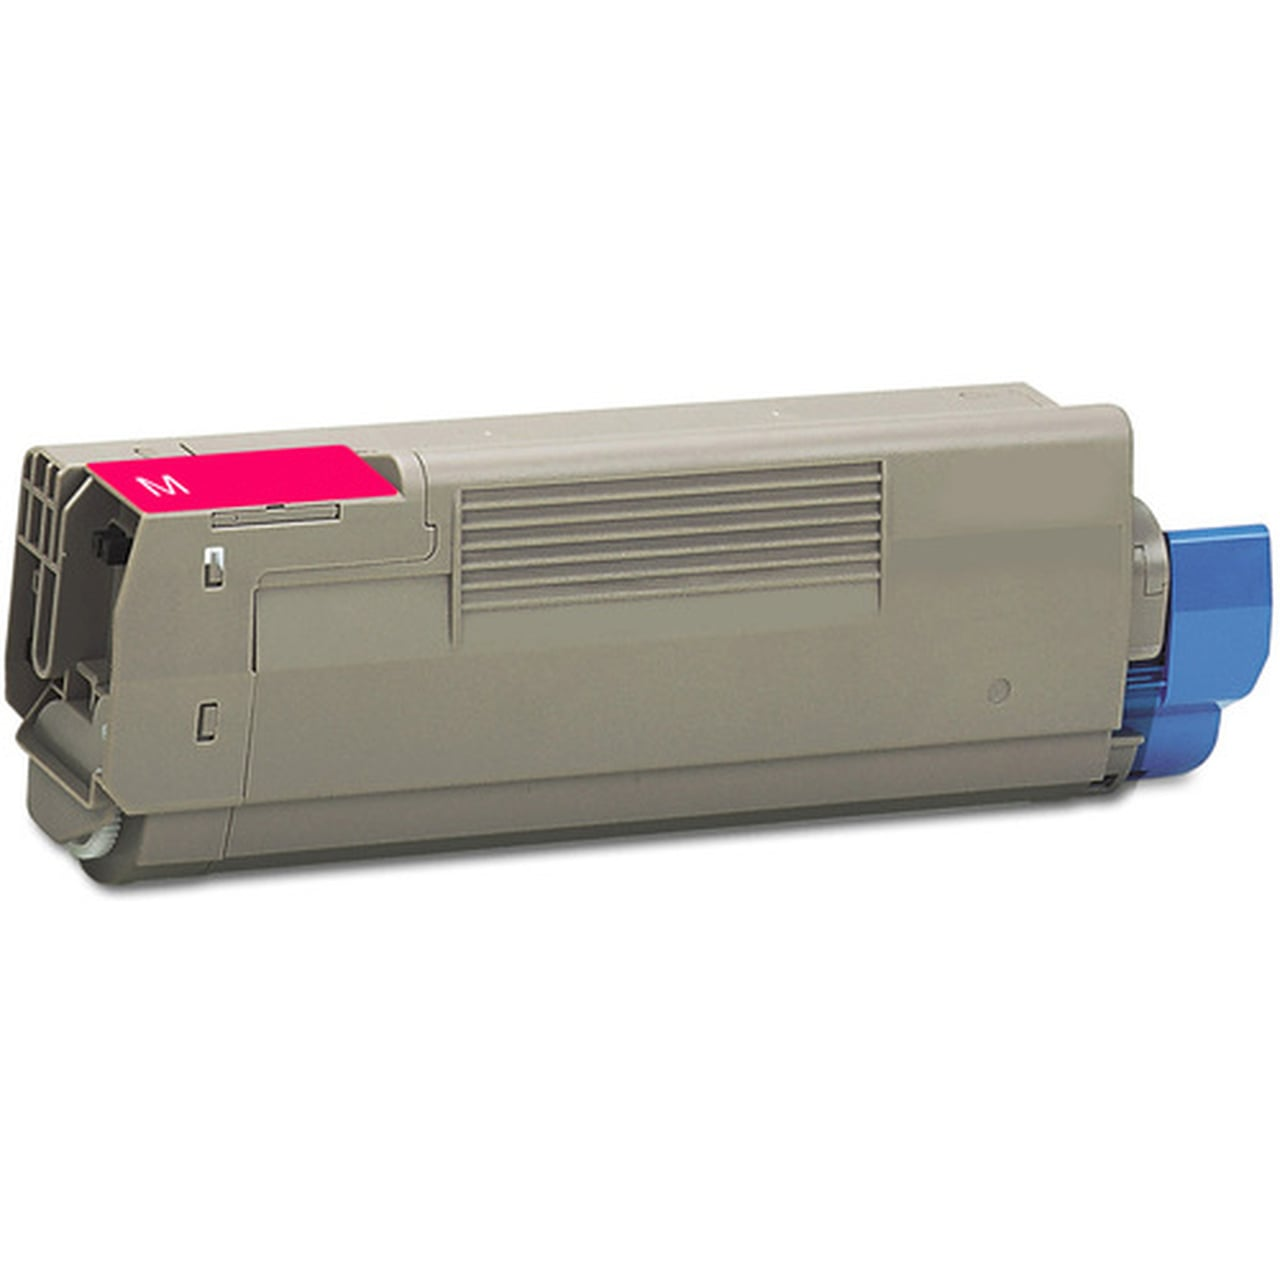 43324467 Toner Cartridge - Okidata Compatible (Magenta)